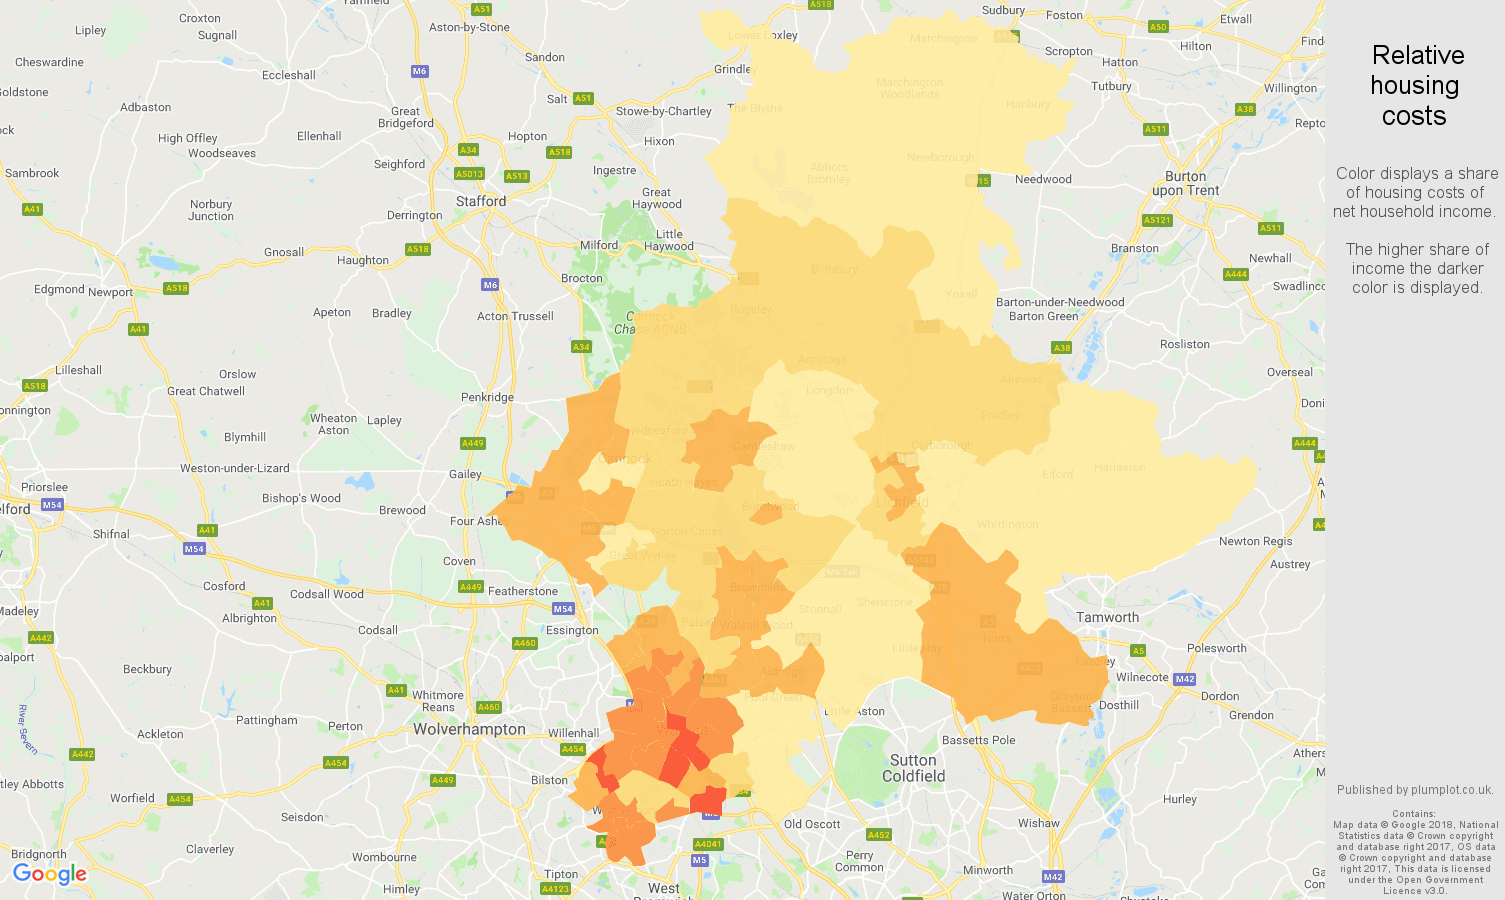 Walsall relative housing costs map